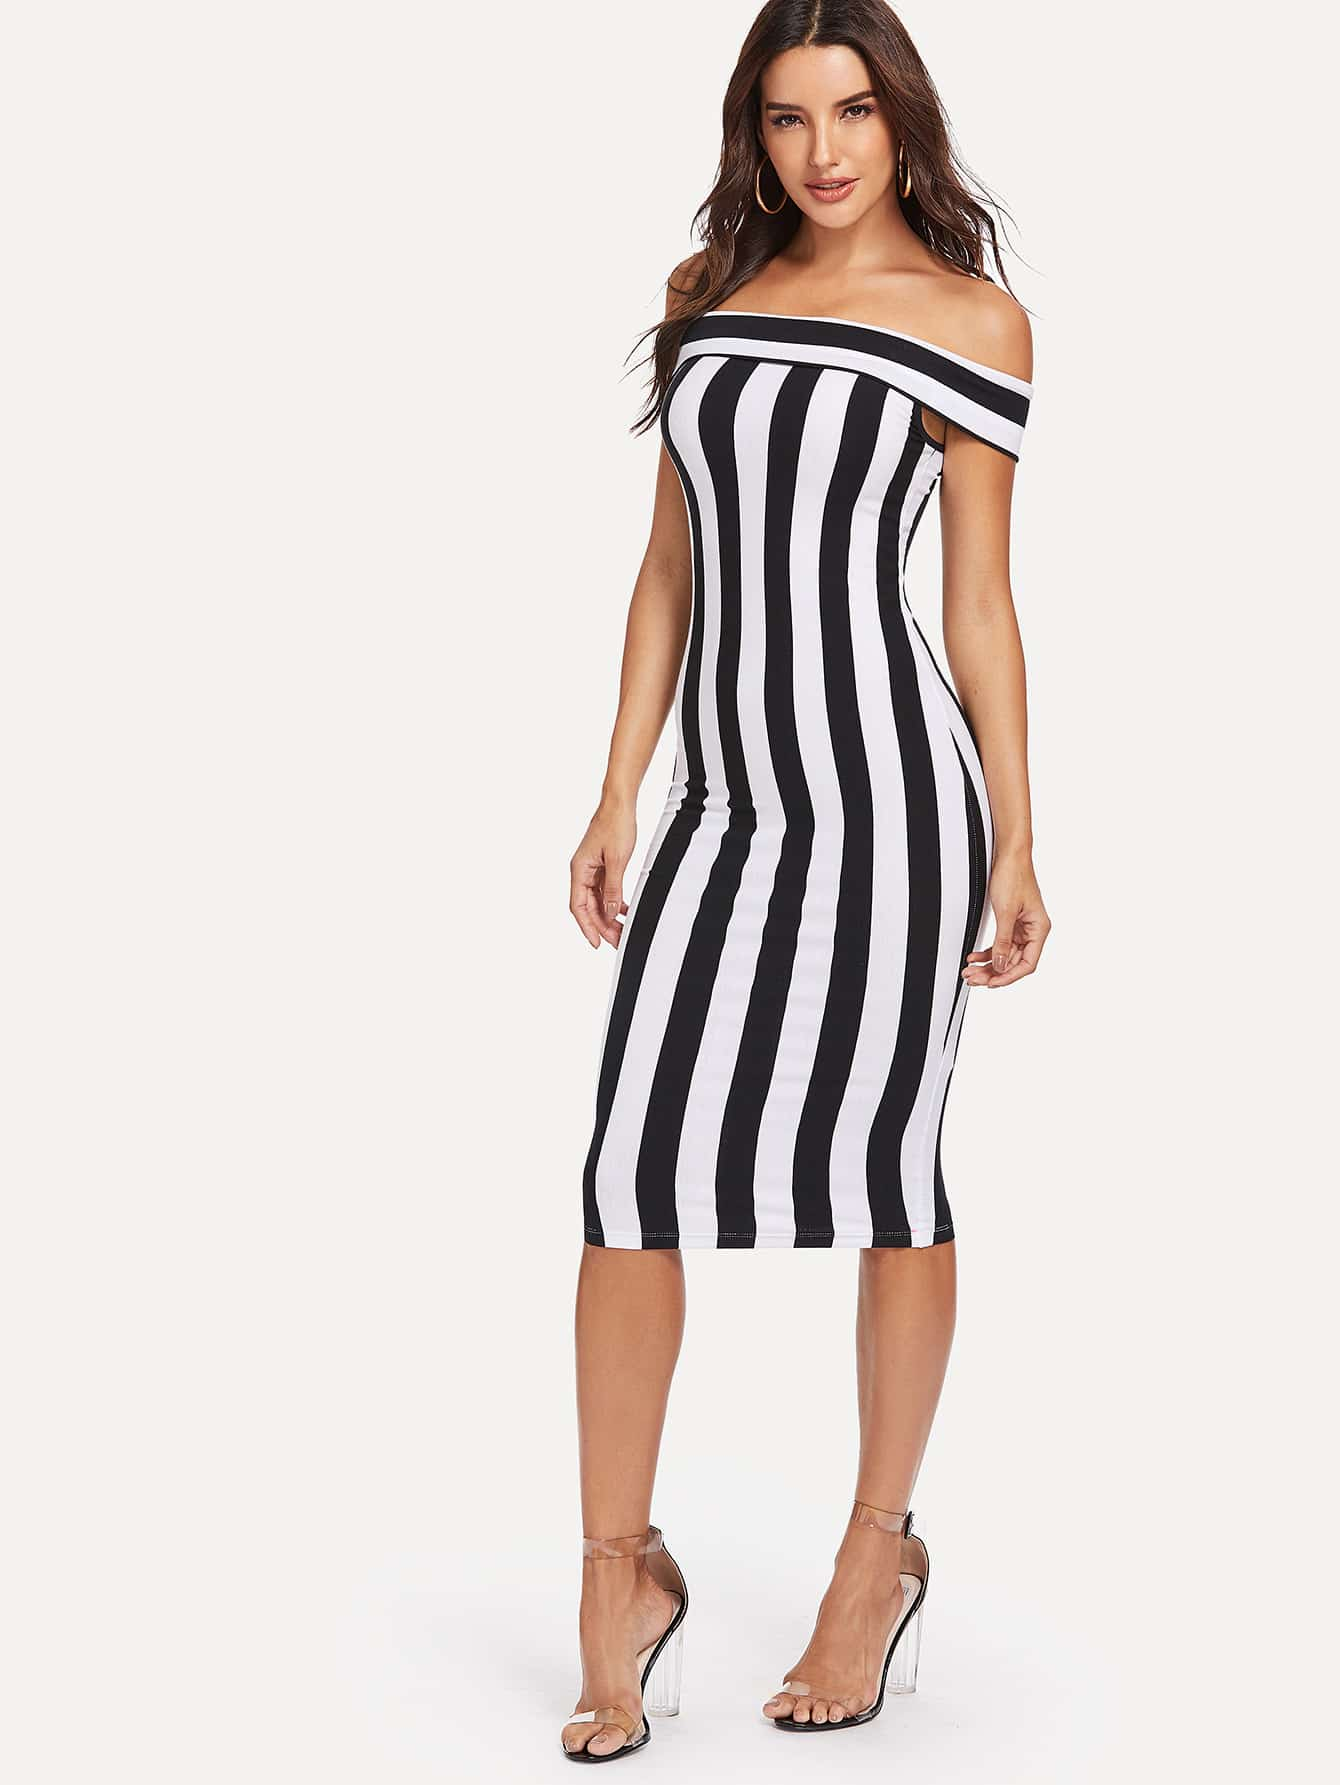 Off Shoulder Striped Bodycon Dress sweetheart off shoulder asymmetrical bodycon dress